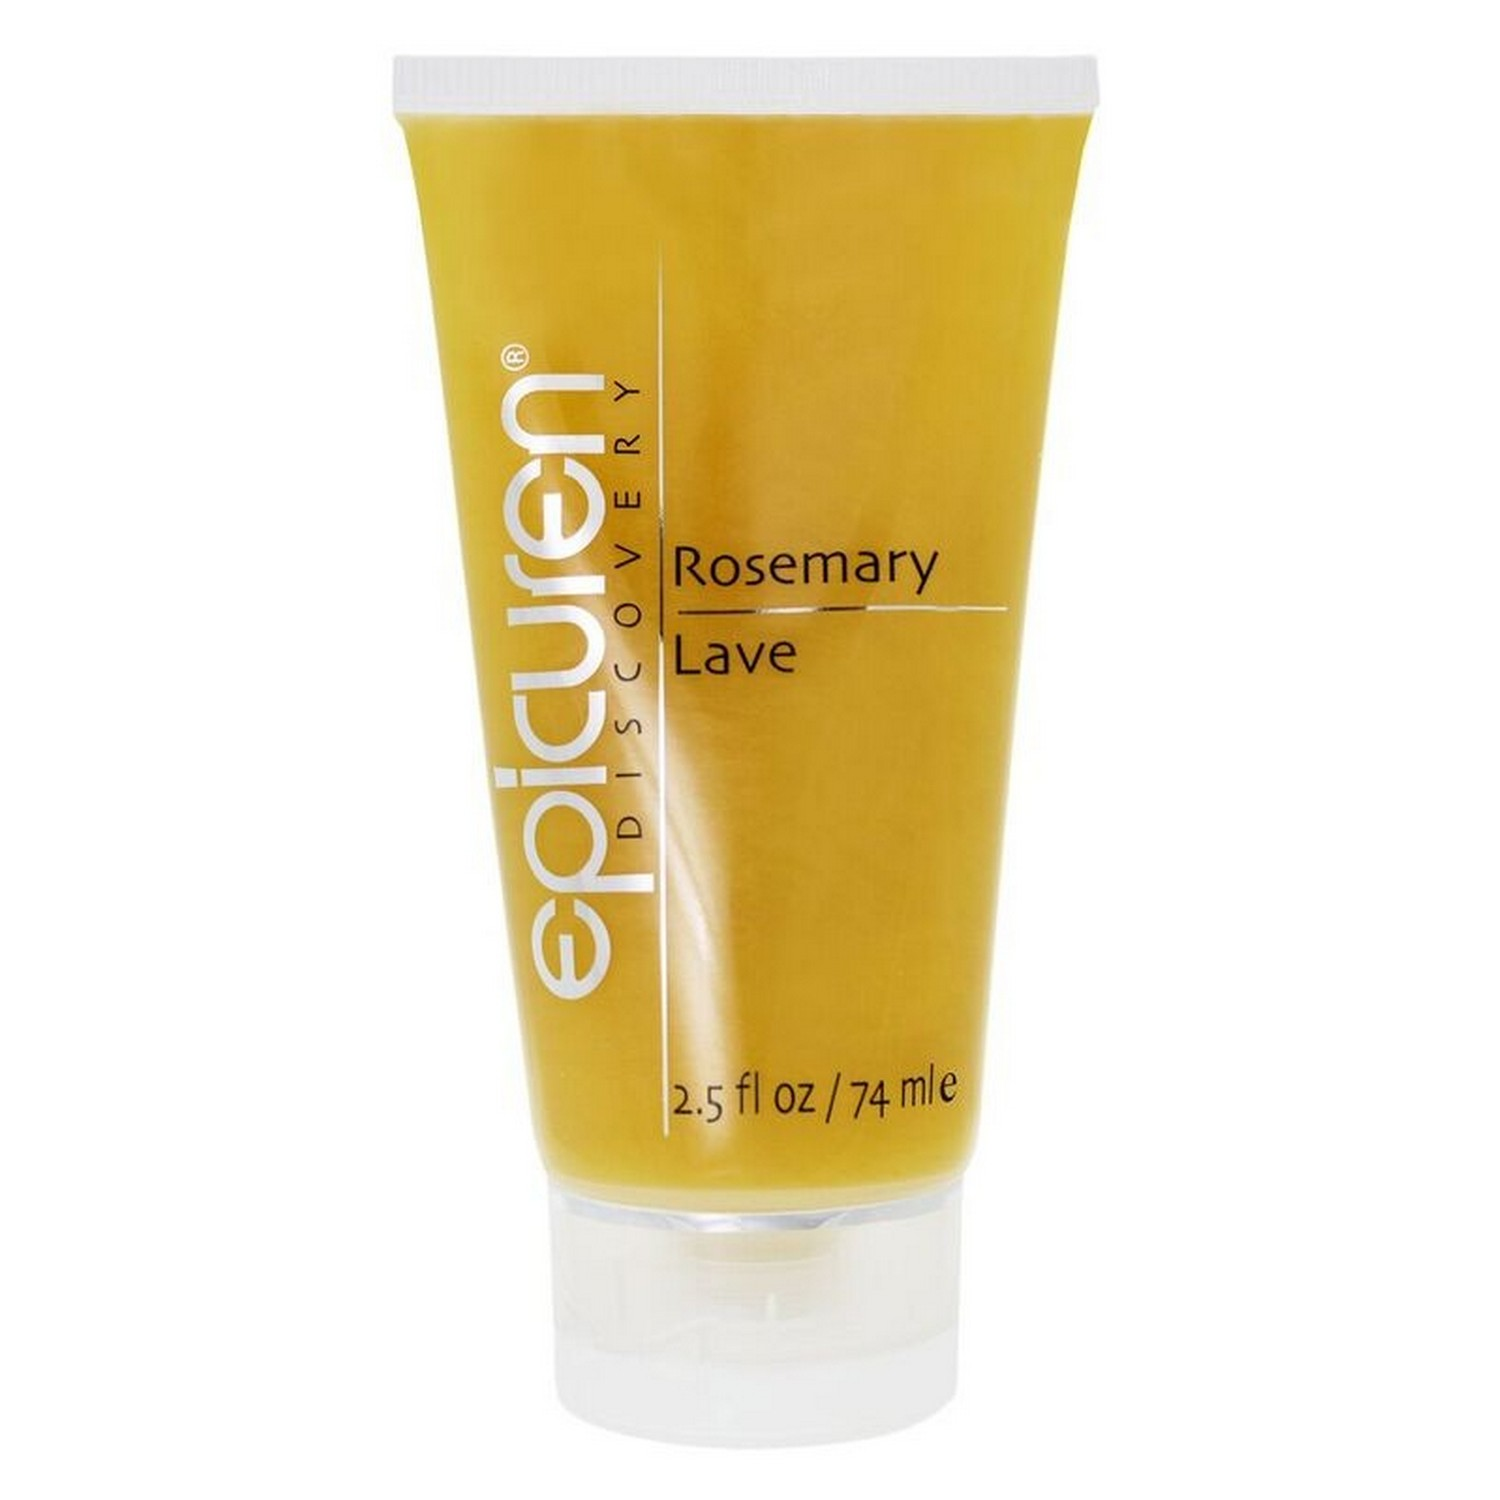 epicuren Discovery Rosemary Lave Body Cleanser (16.0 fl oz / 500 ml)